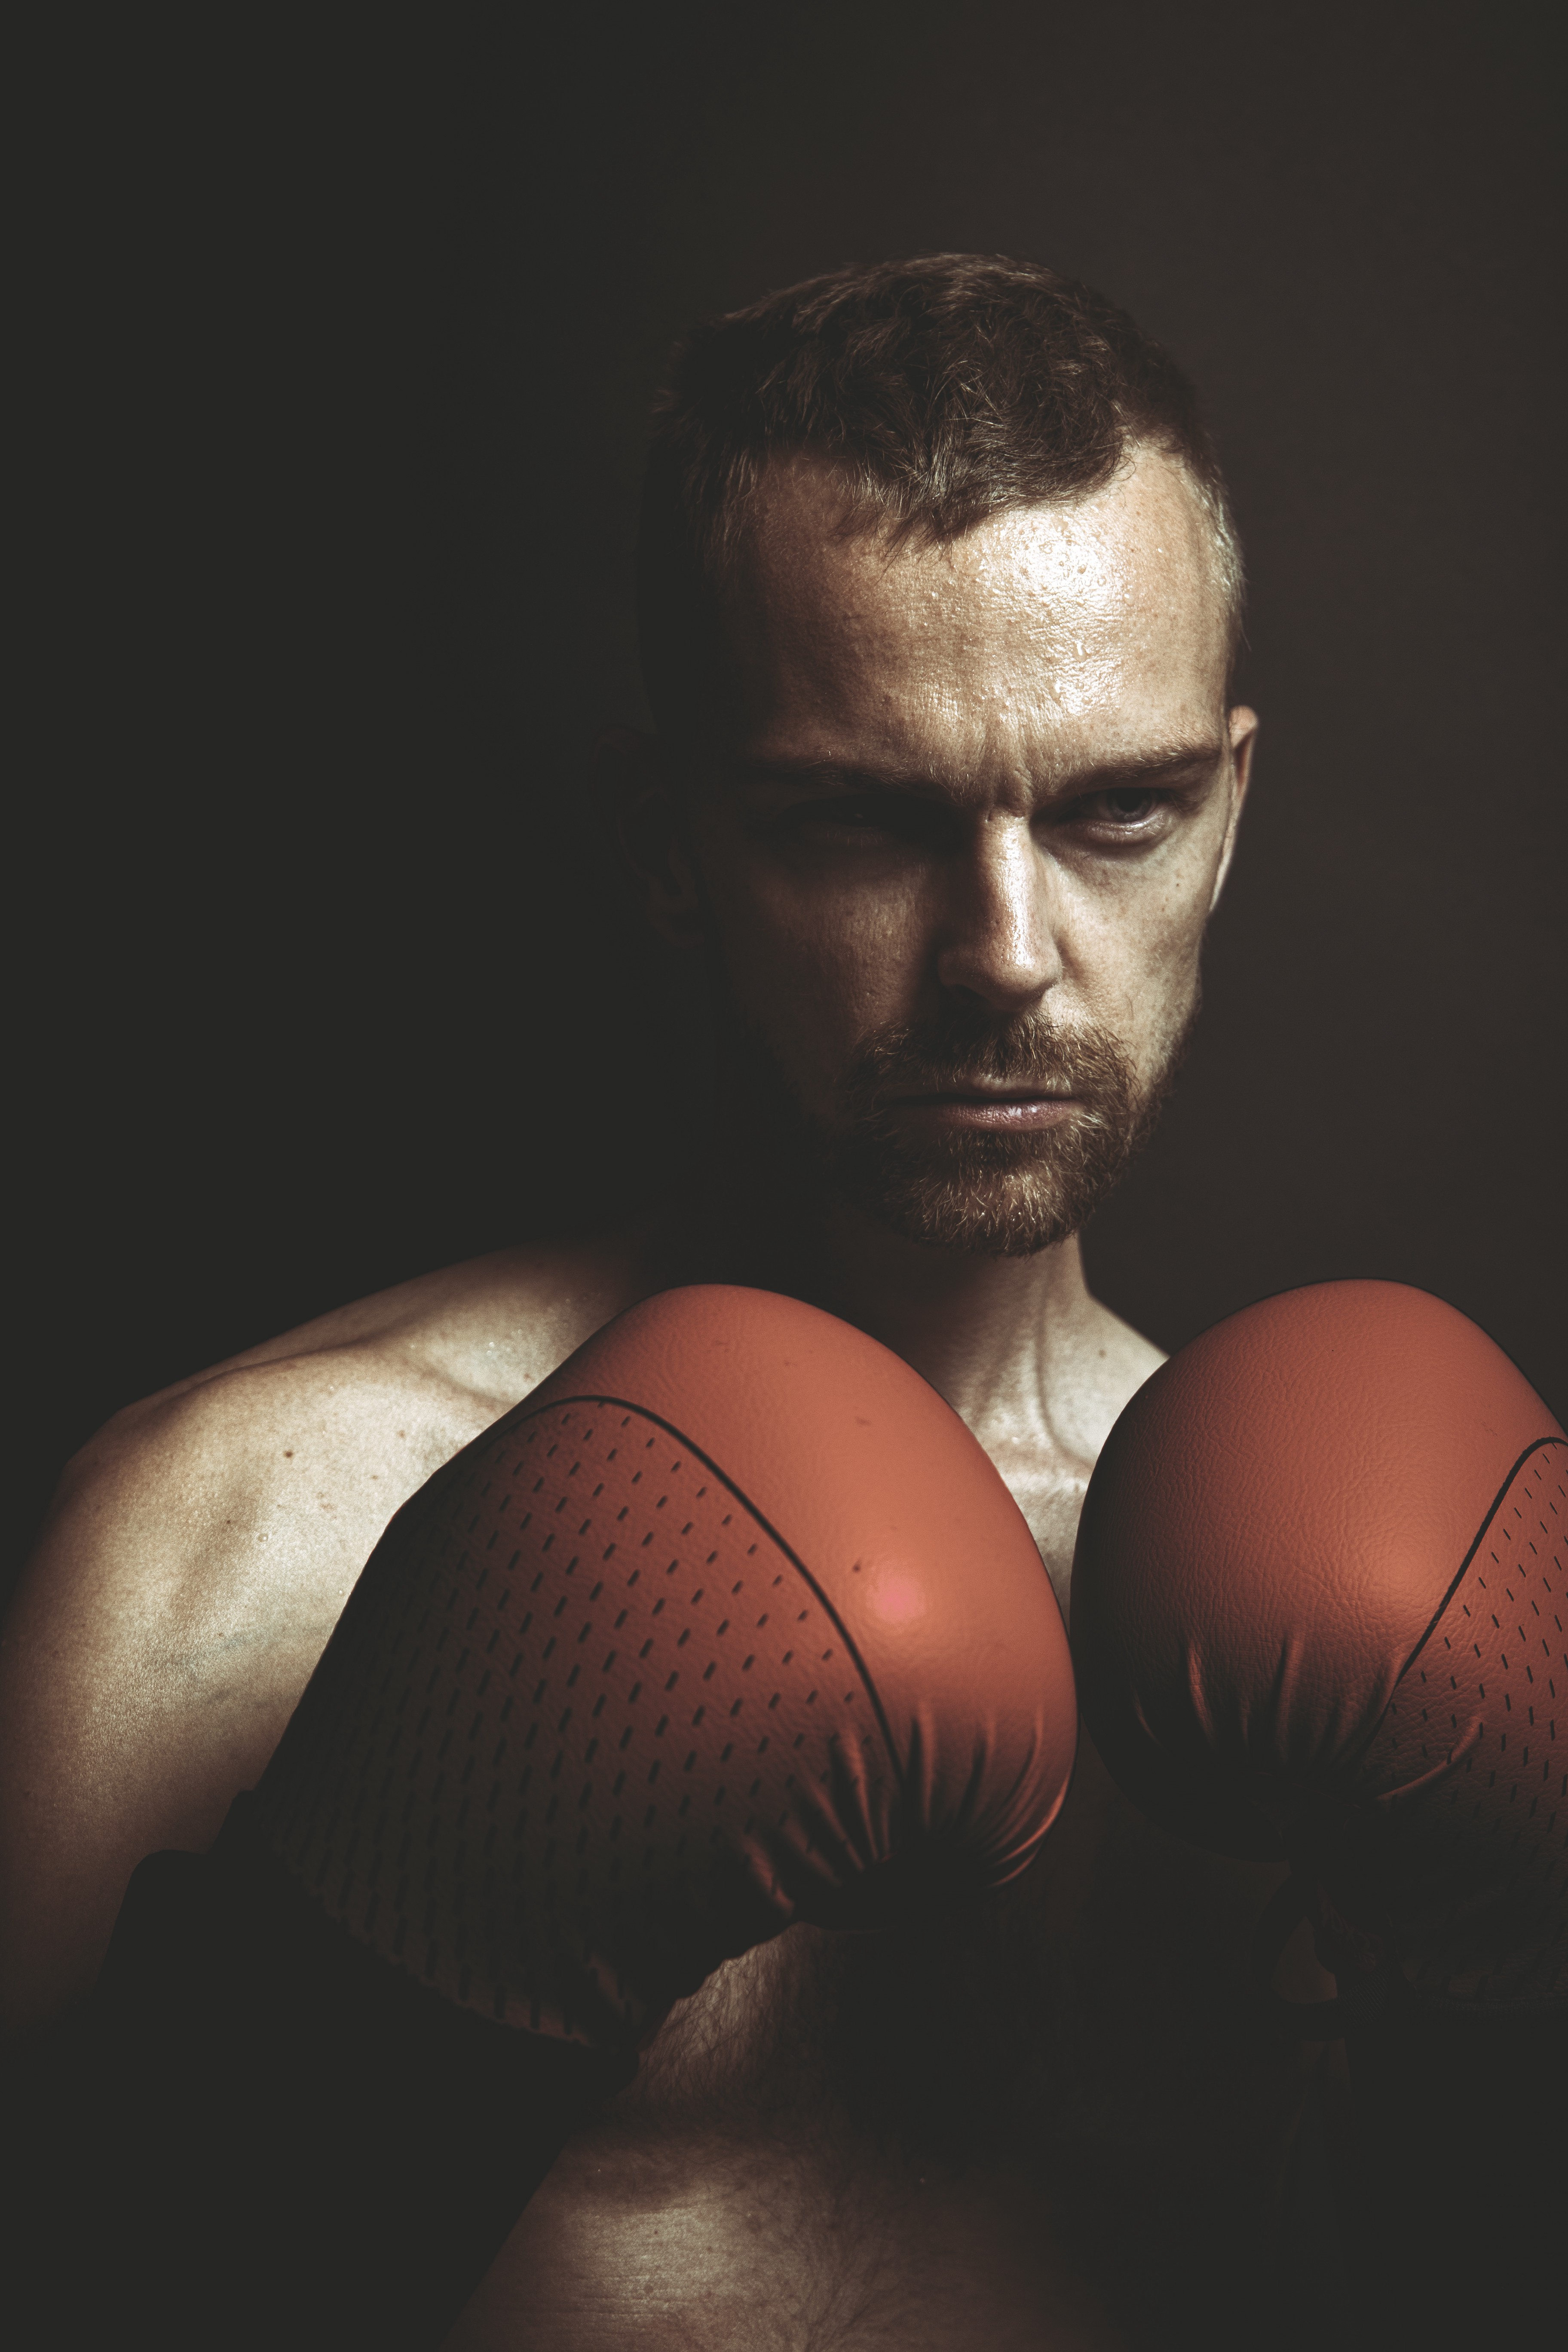 Close up of a handsome man bare chested, wearing boxing gloves.